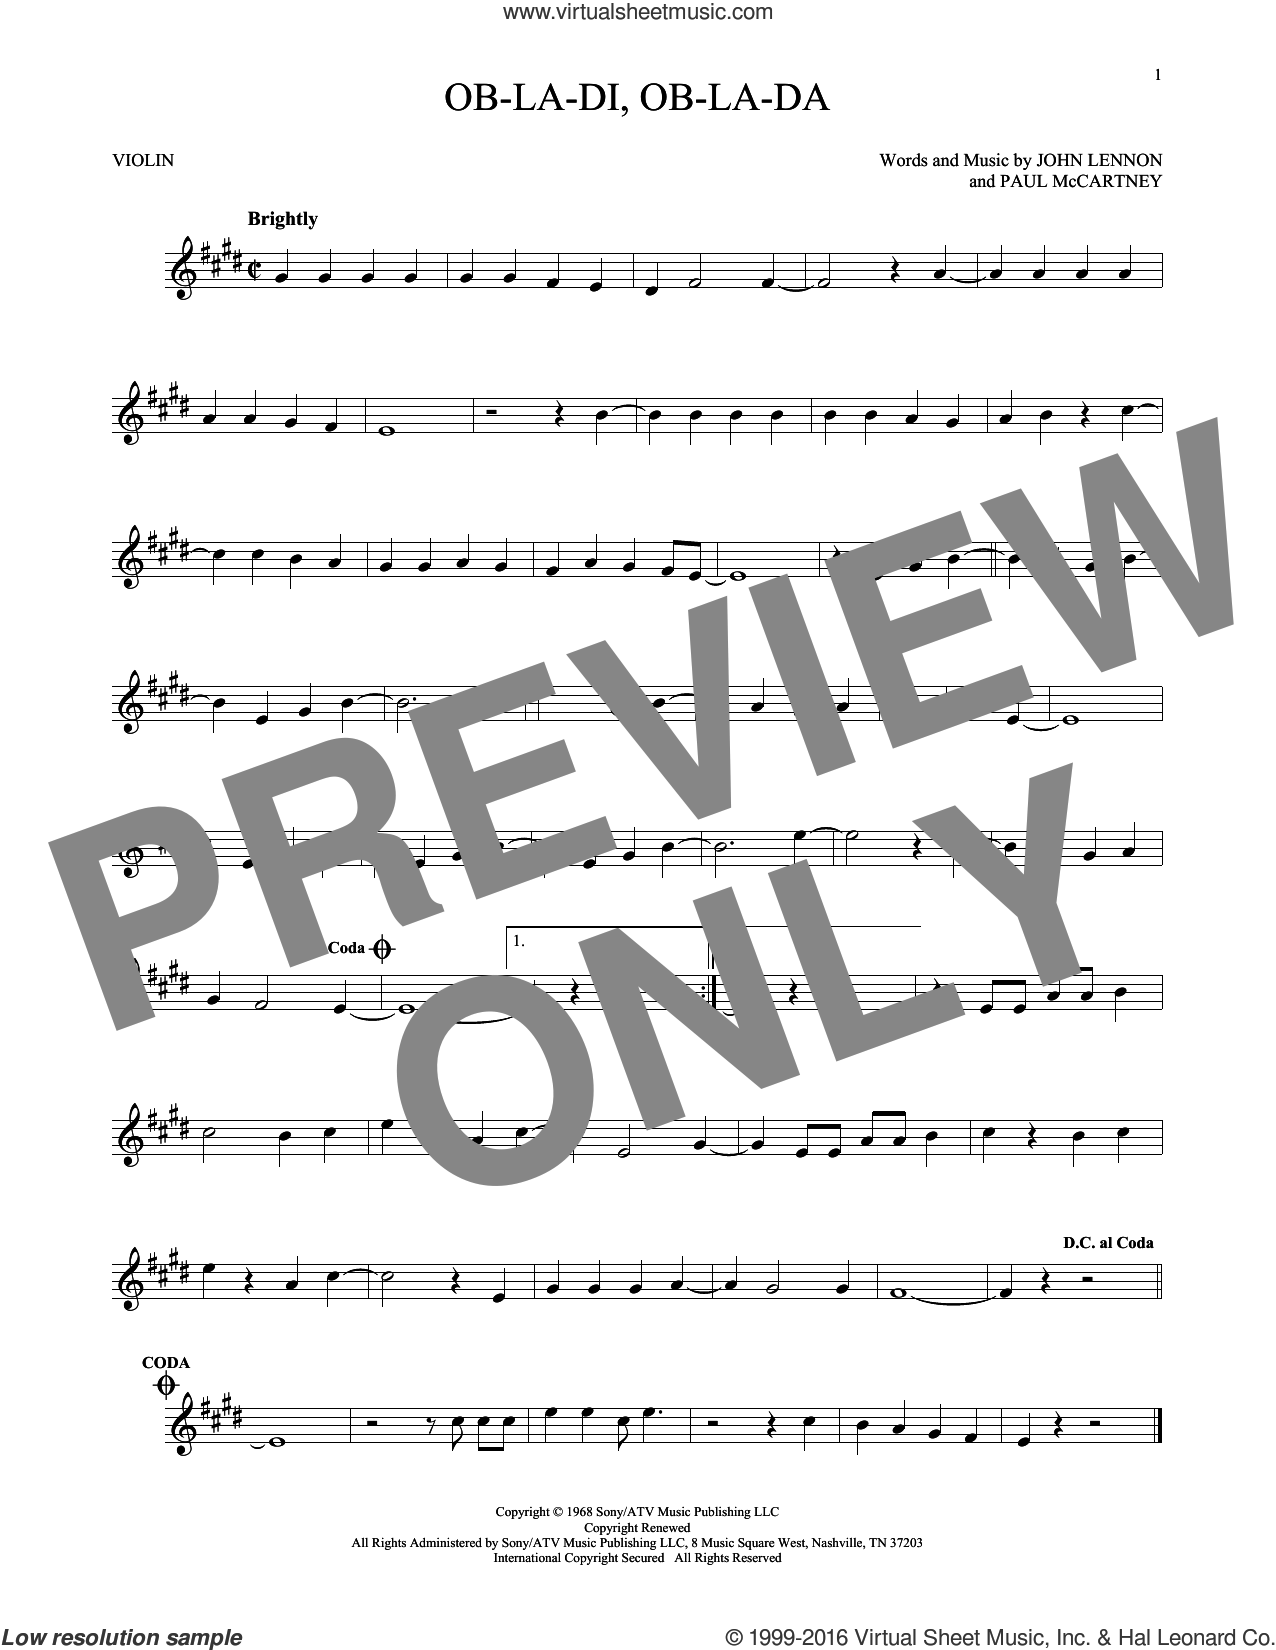 Ob-La-Di, Ob-La-Da sheet music for violin solo by The Beatles, John Lennon and Paul McCartney, intermediate skill level